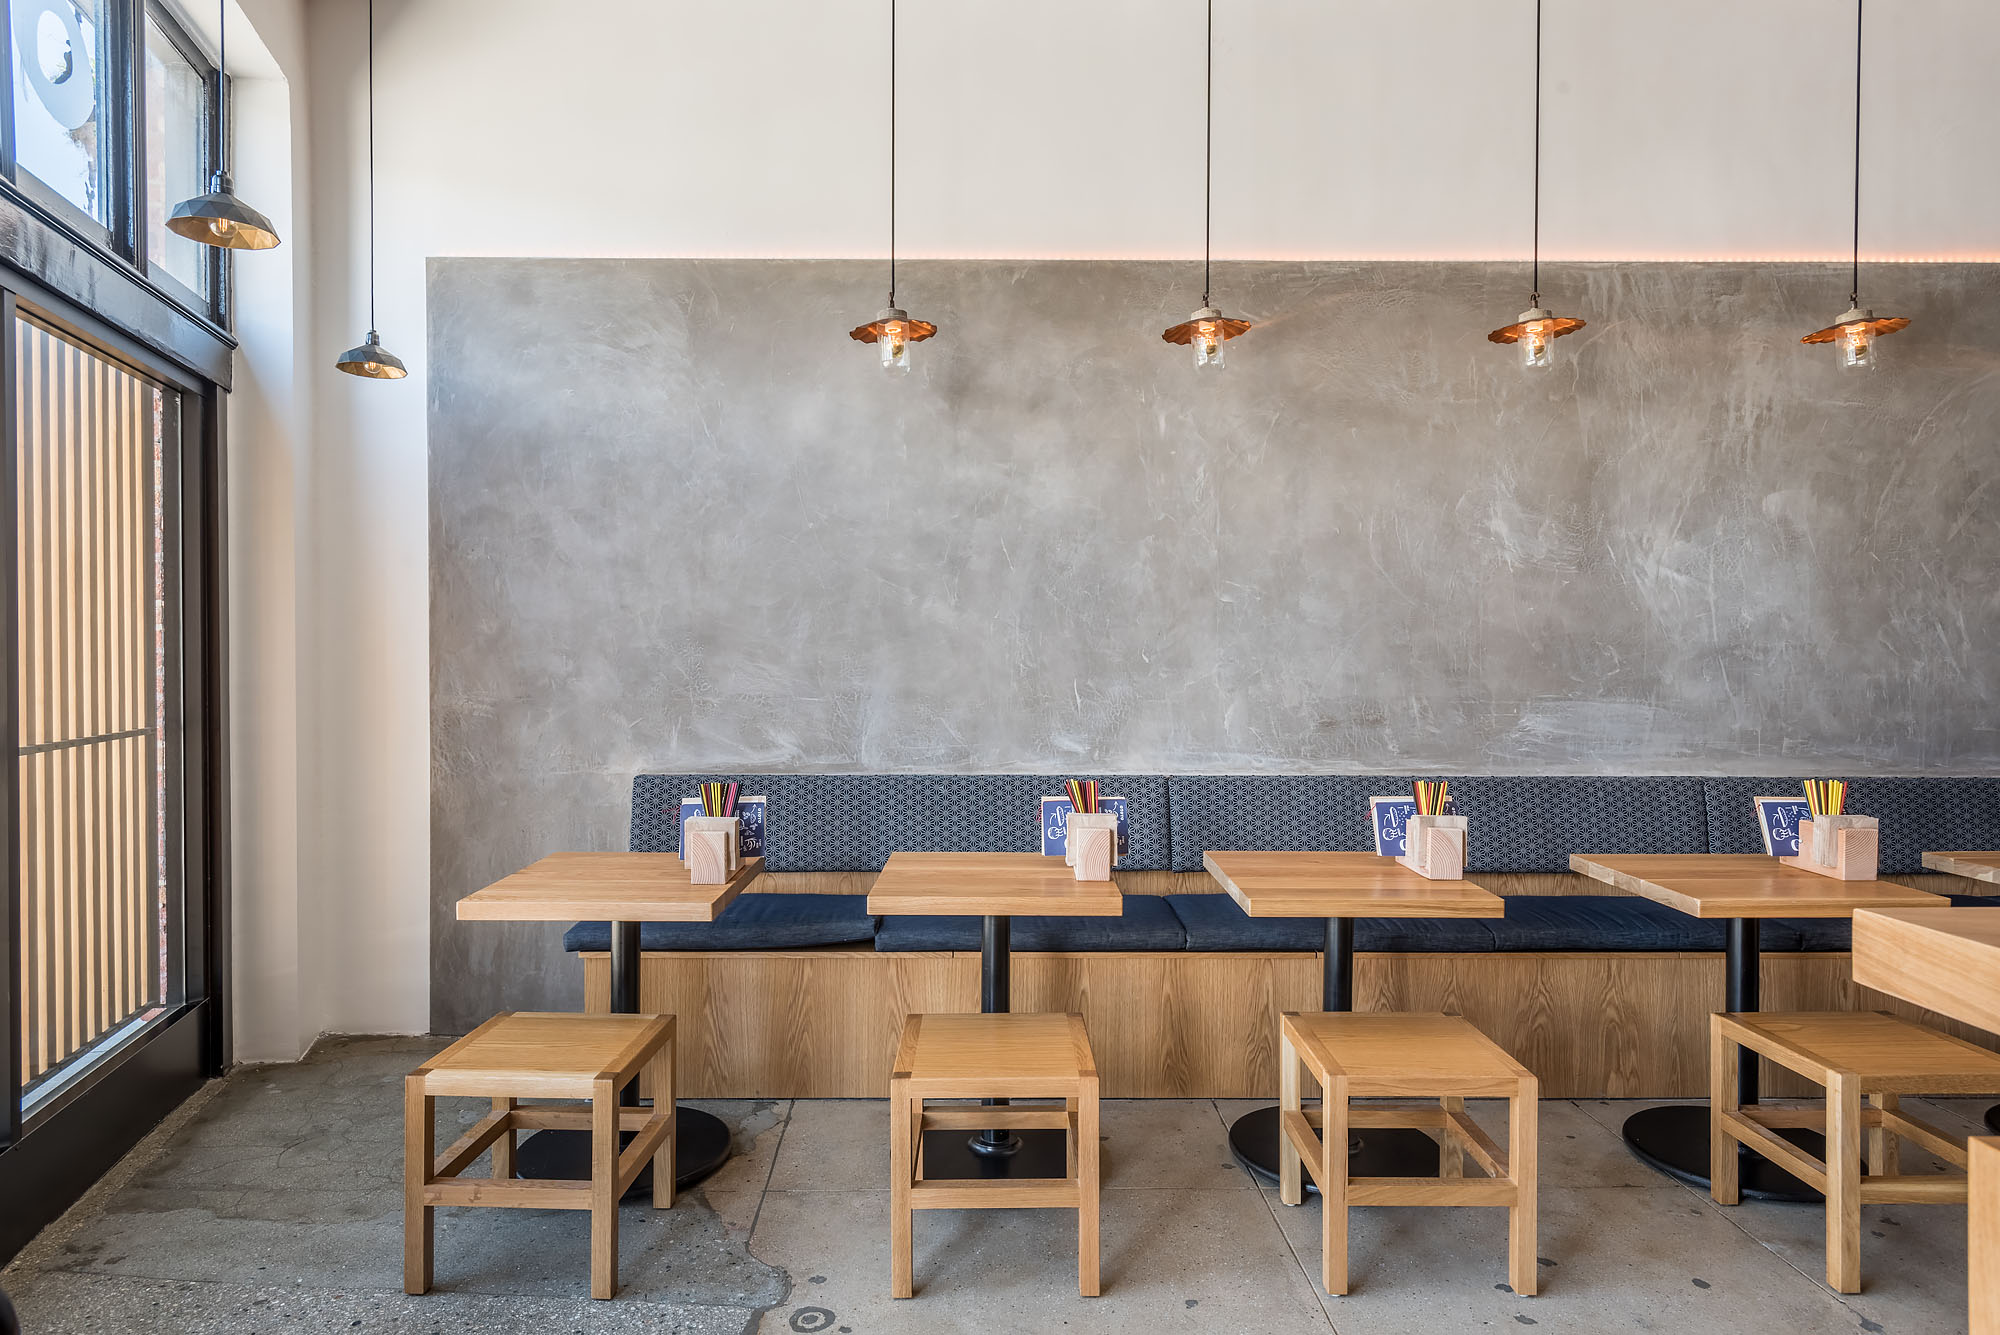 LA Times Critic Adores the Sake Situation at Echo Park's Tiny Ototo Restaurant